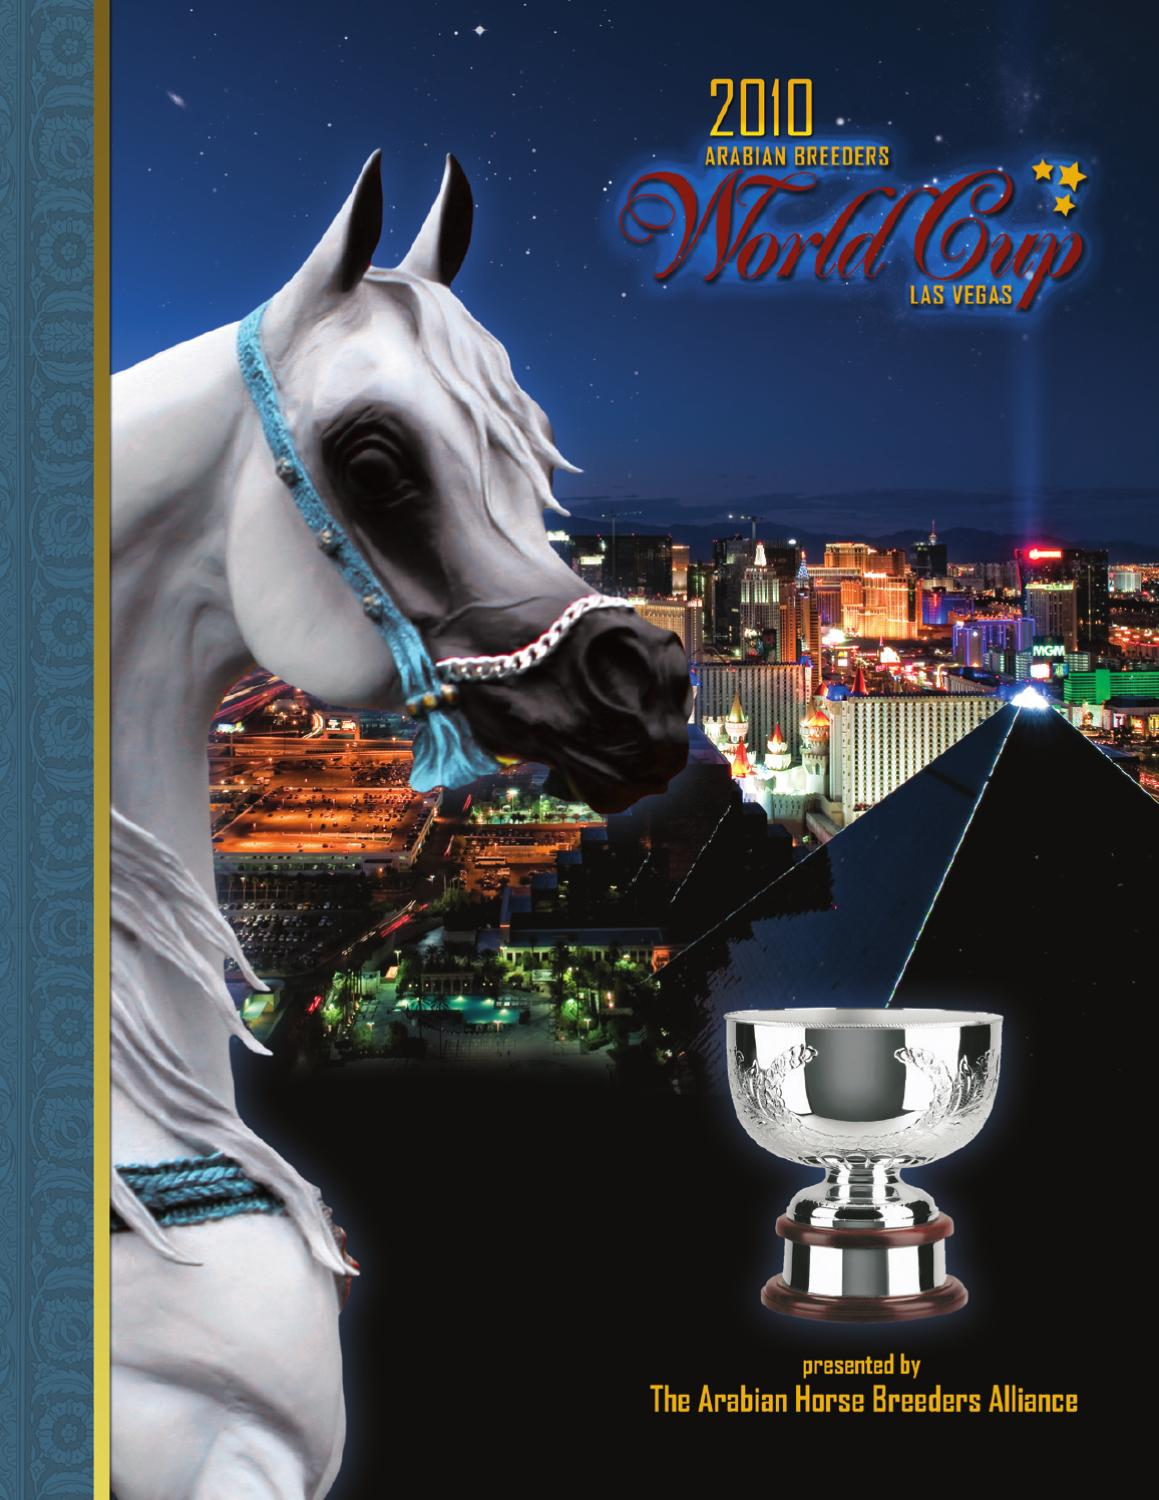 2010 Arabian Breeders World Cup Show Program By Knight